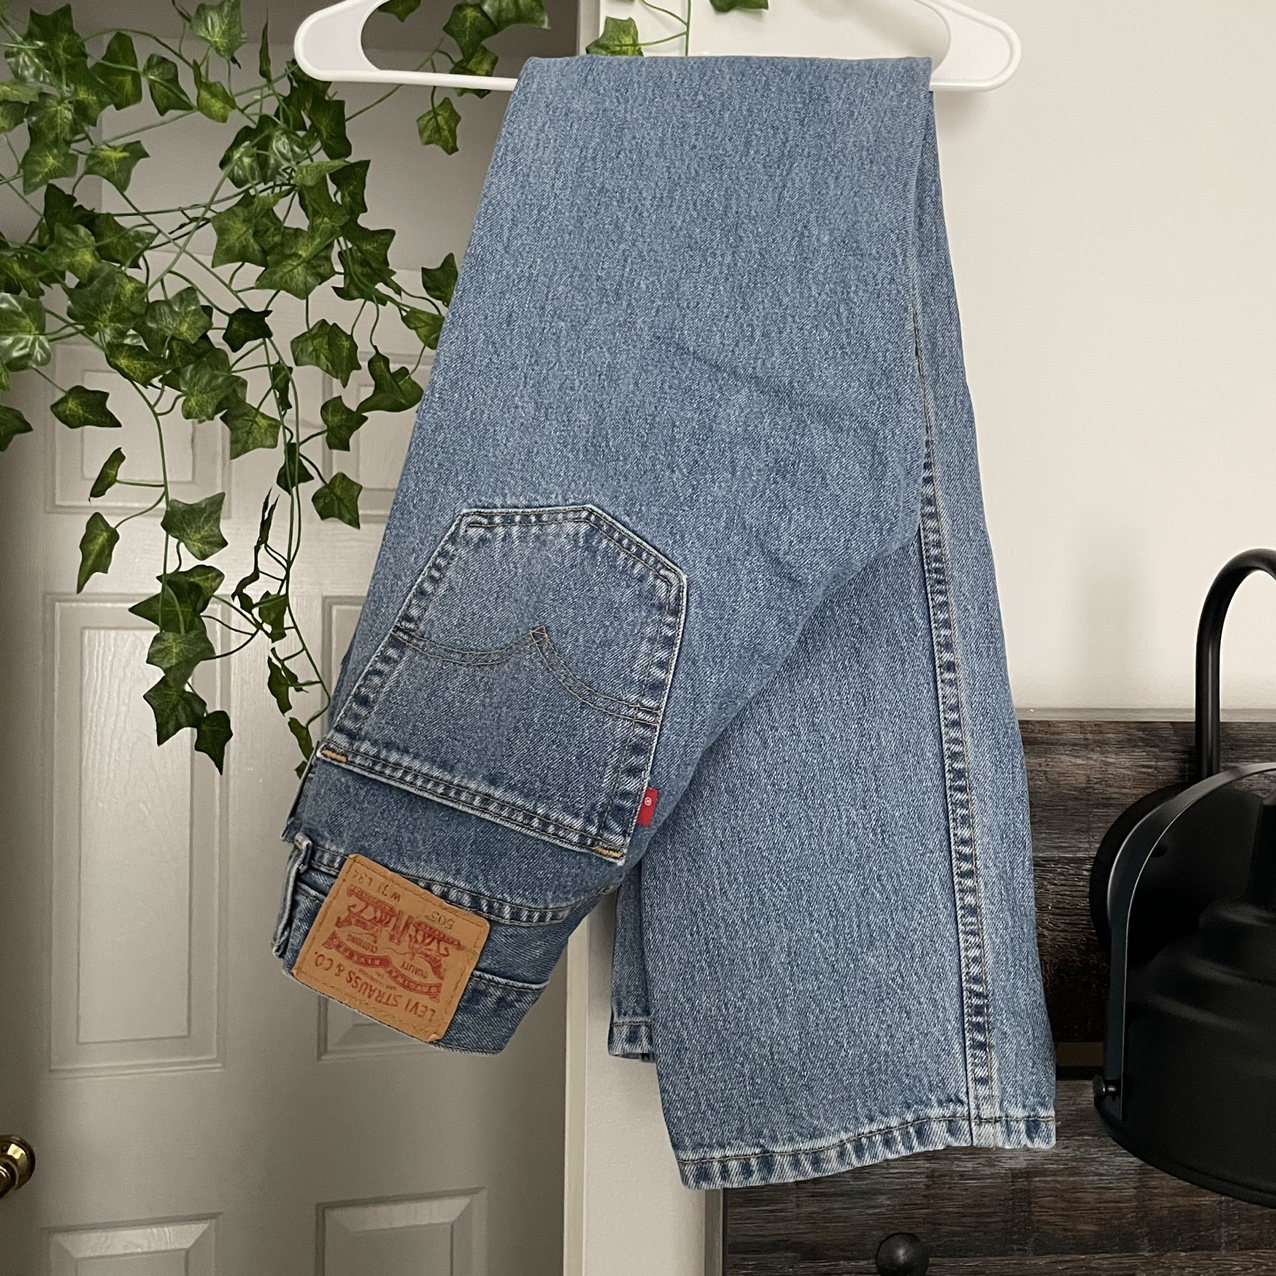 Product Image 1 - 505 Levi's Jeans. Nice blue